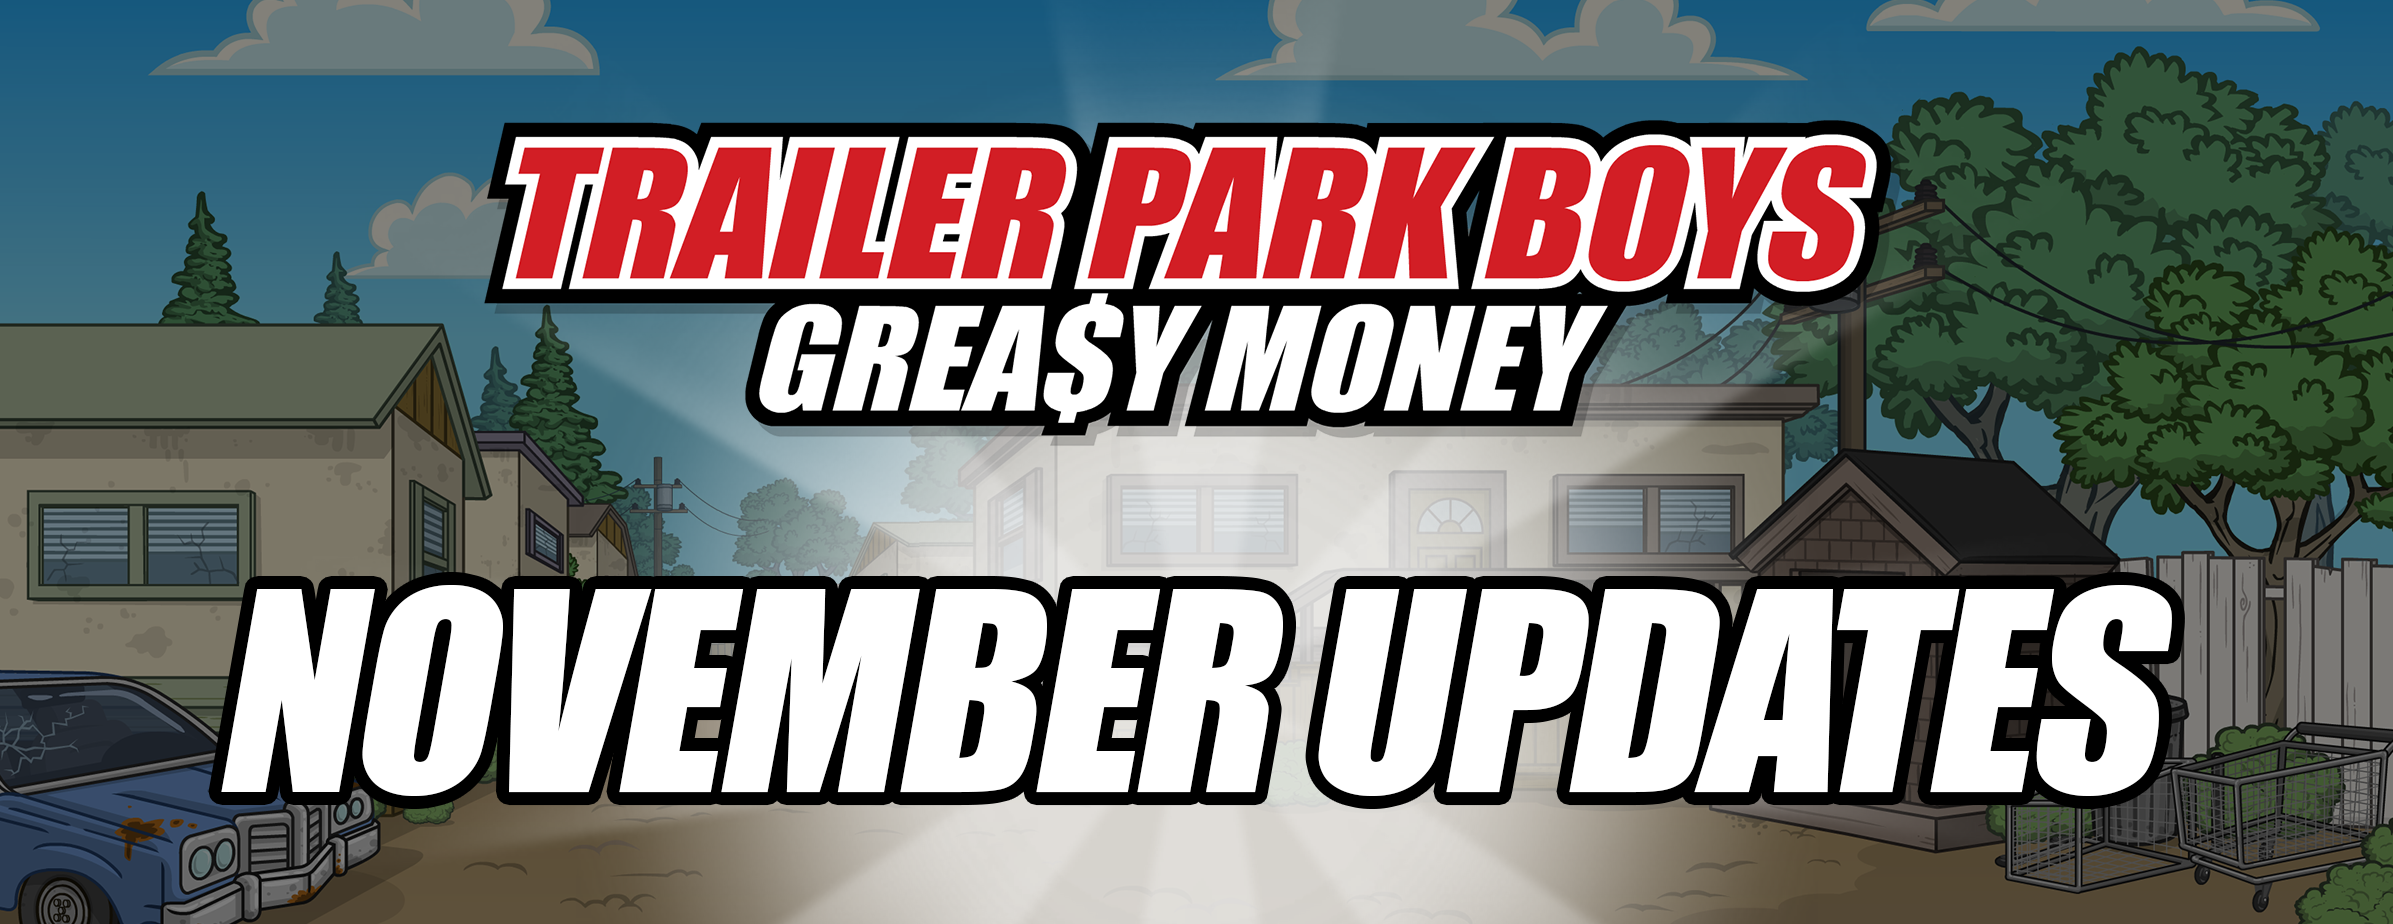 Trailer Park Boys: Greasy November Events!